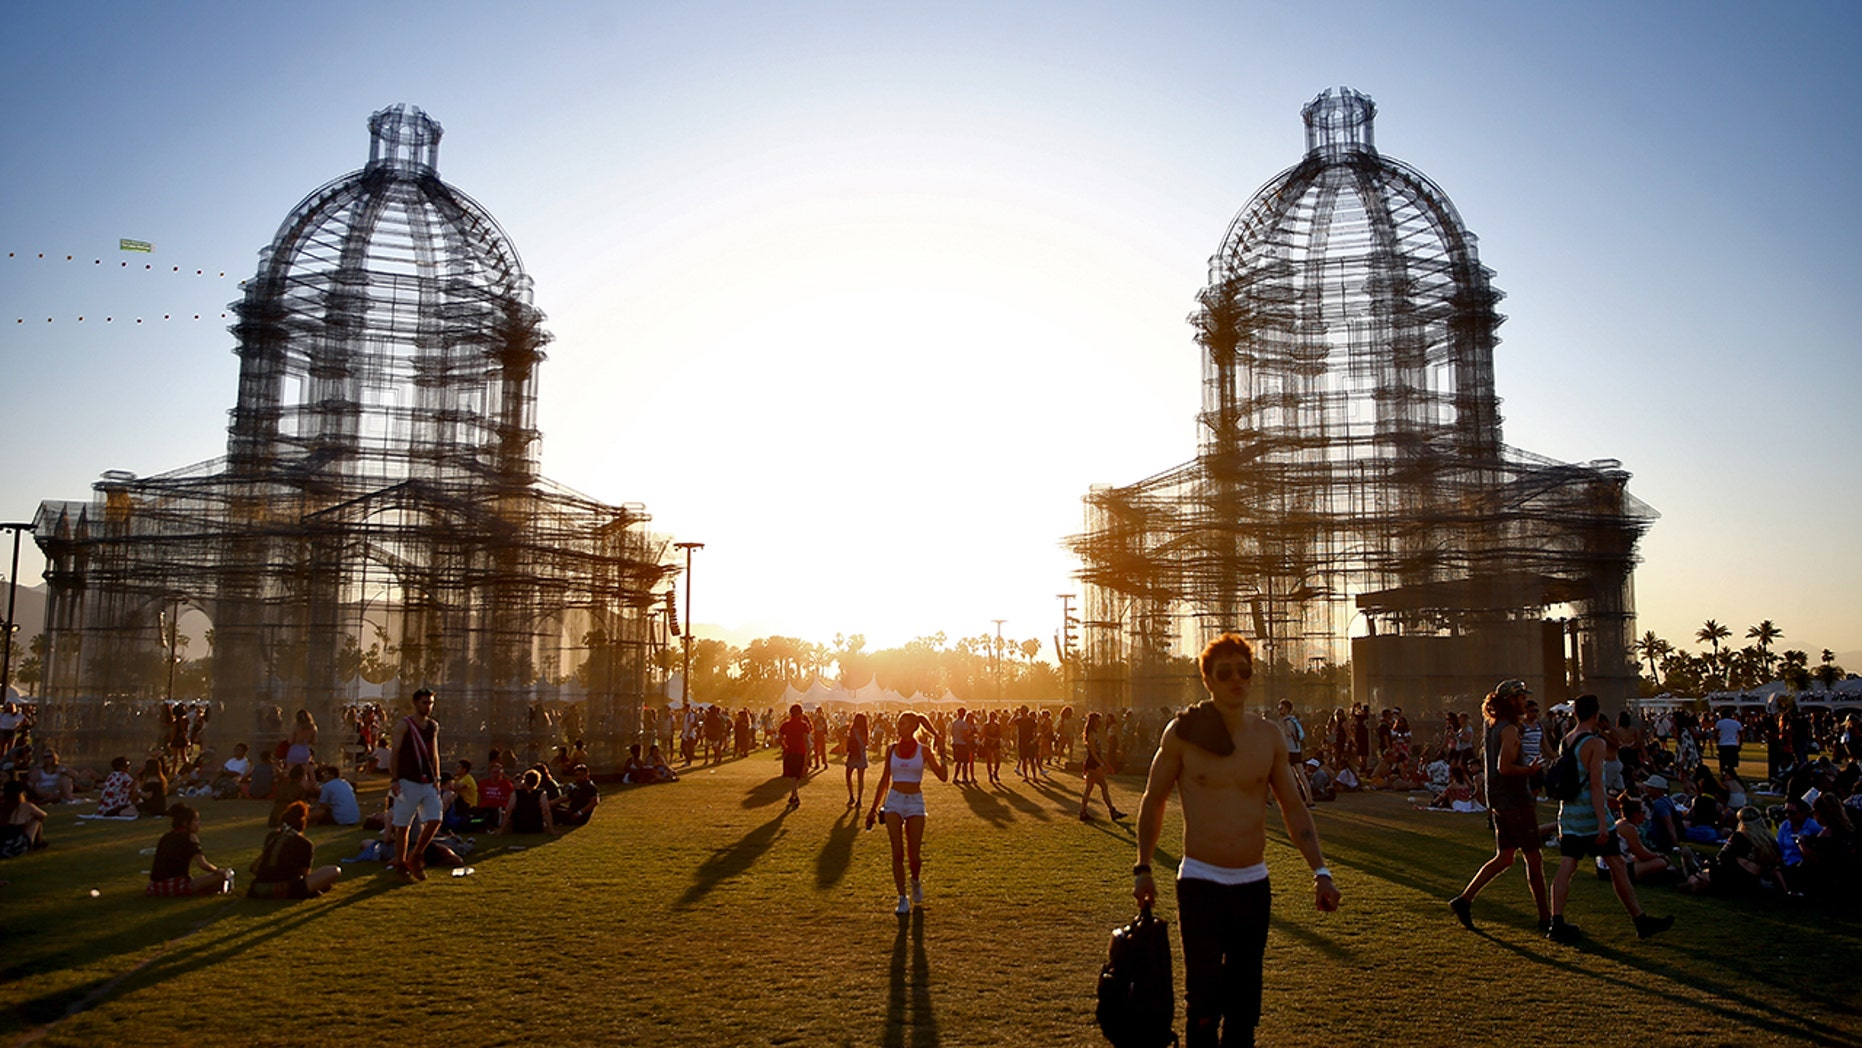 Worker dies in fall while setting up Coachella Festival